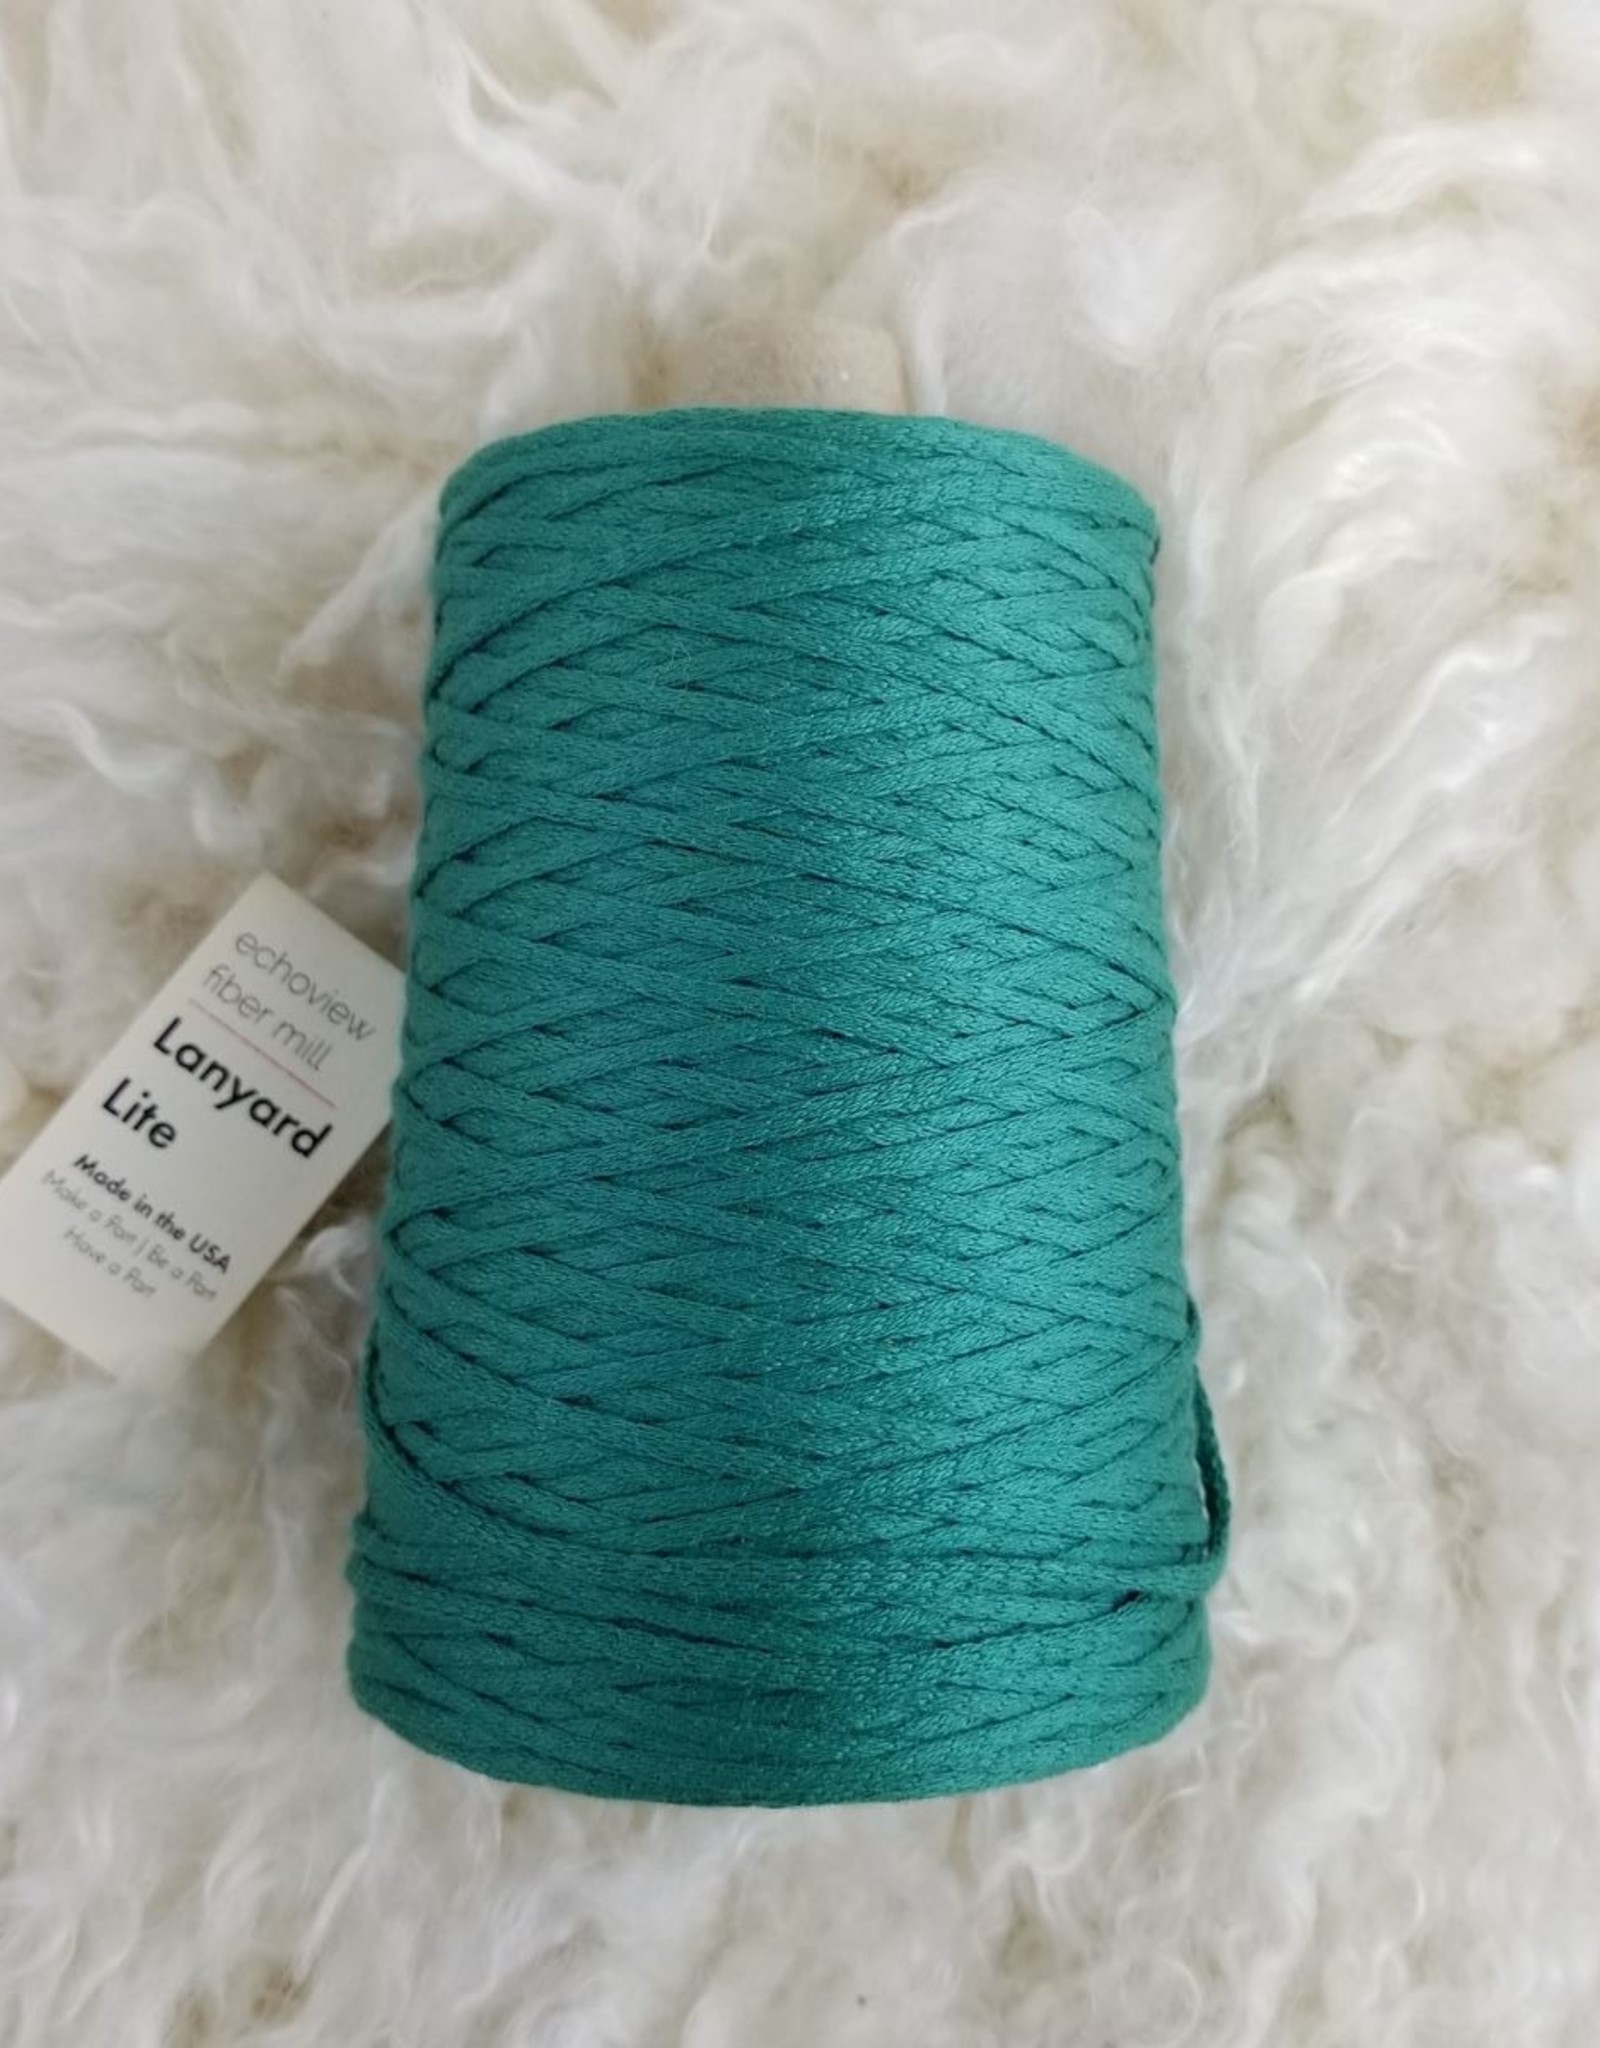 Lanyard Lite Organic Cotton 1lb malachite